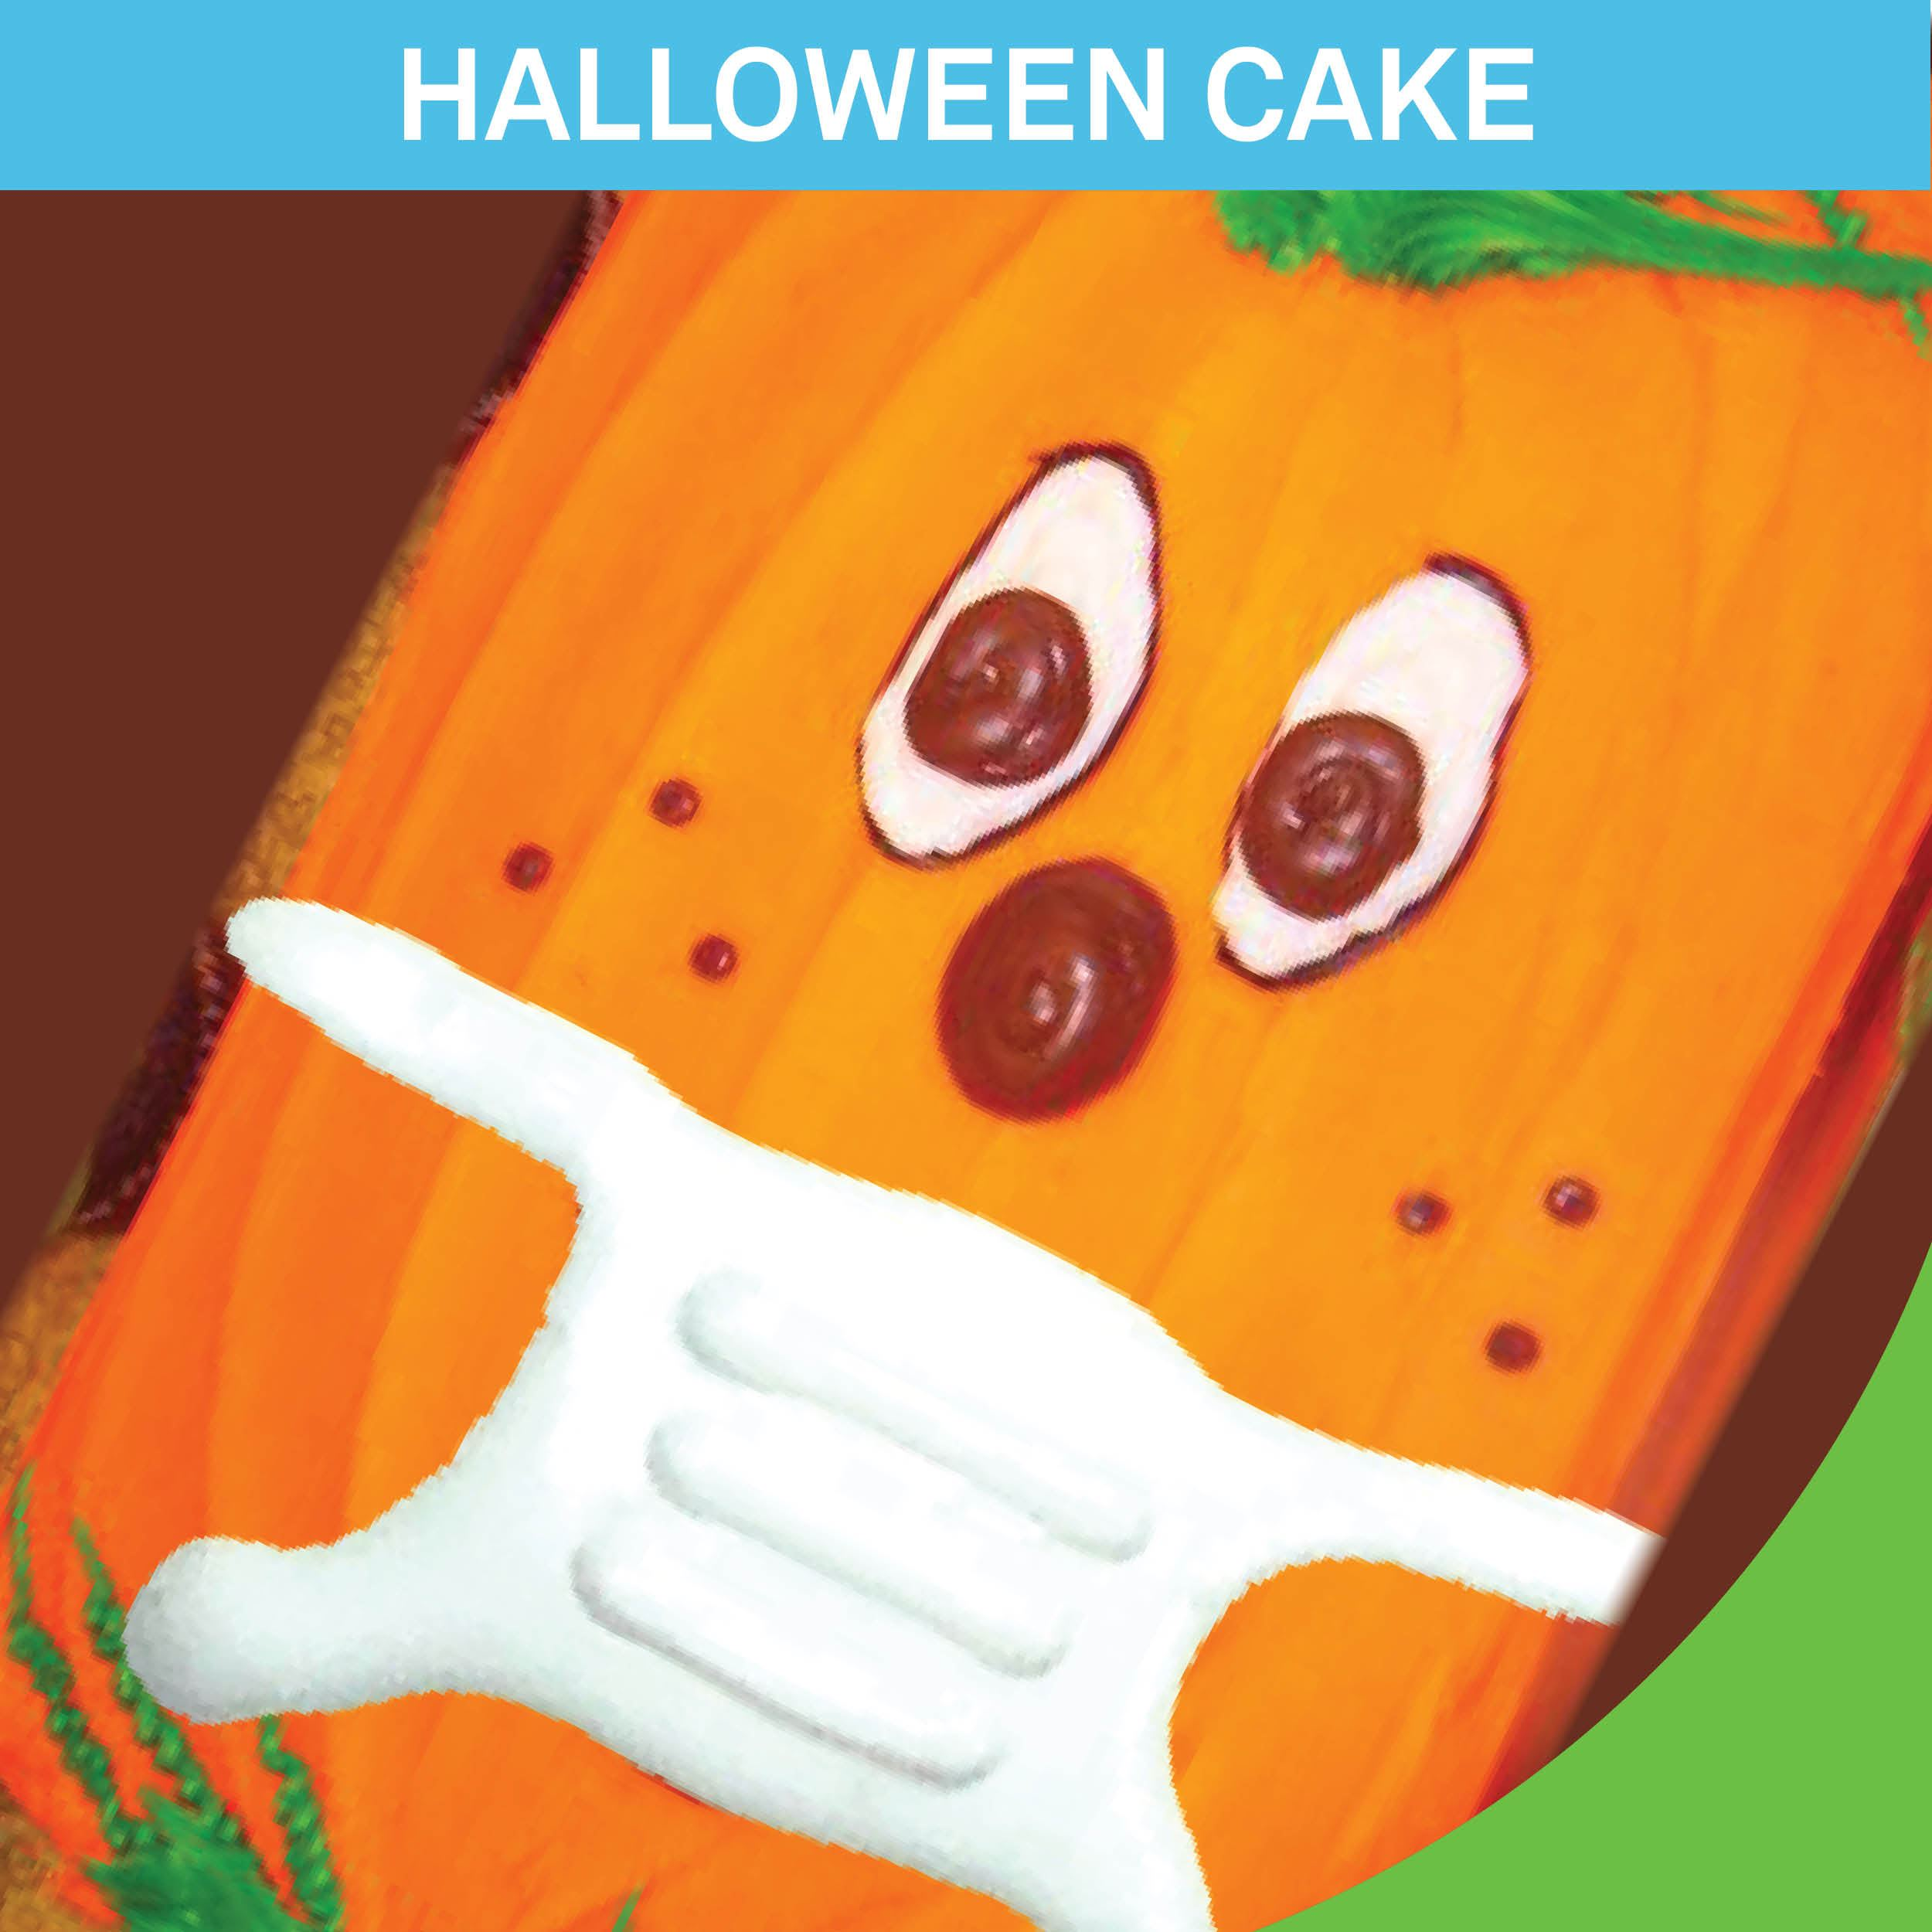 Sign up for Halloween Cake class